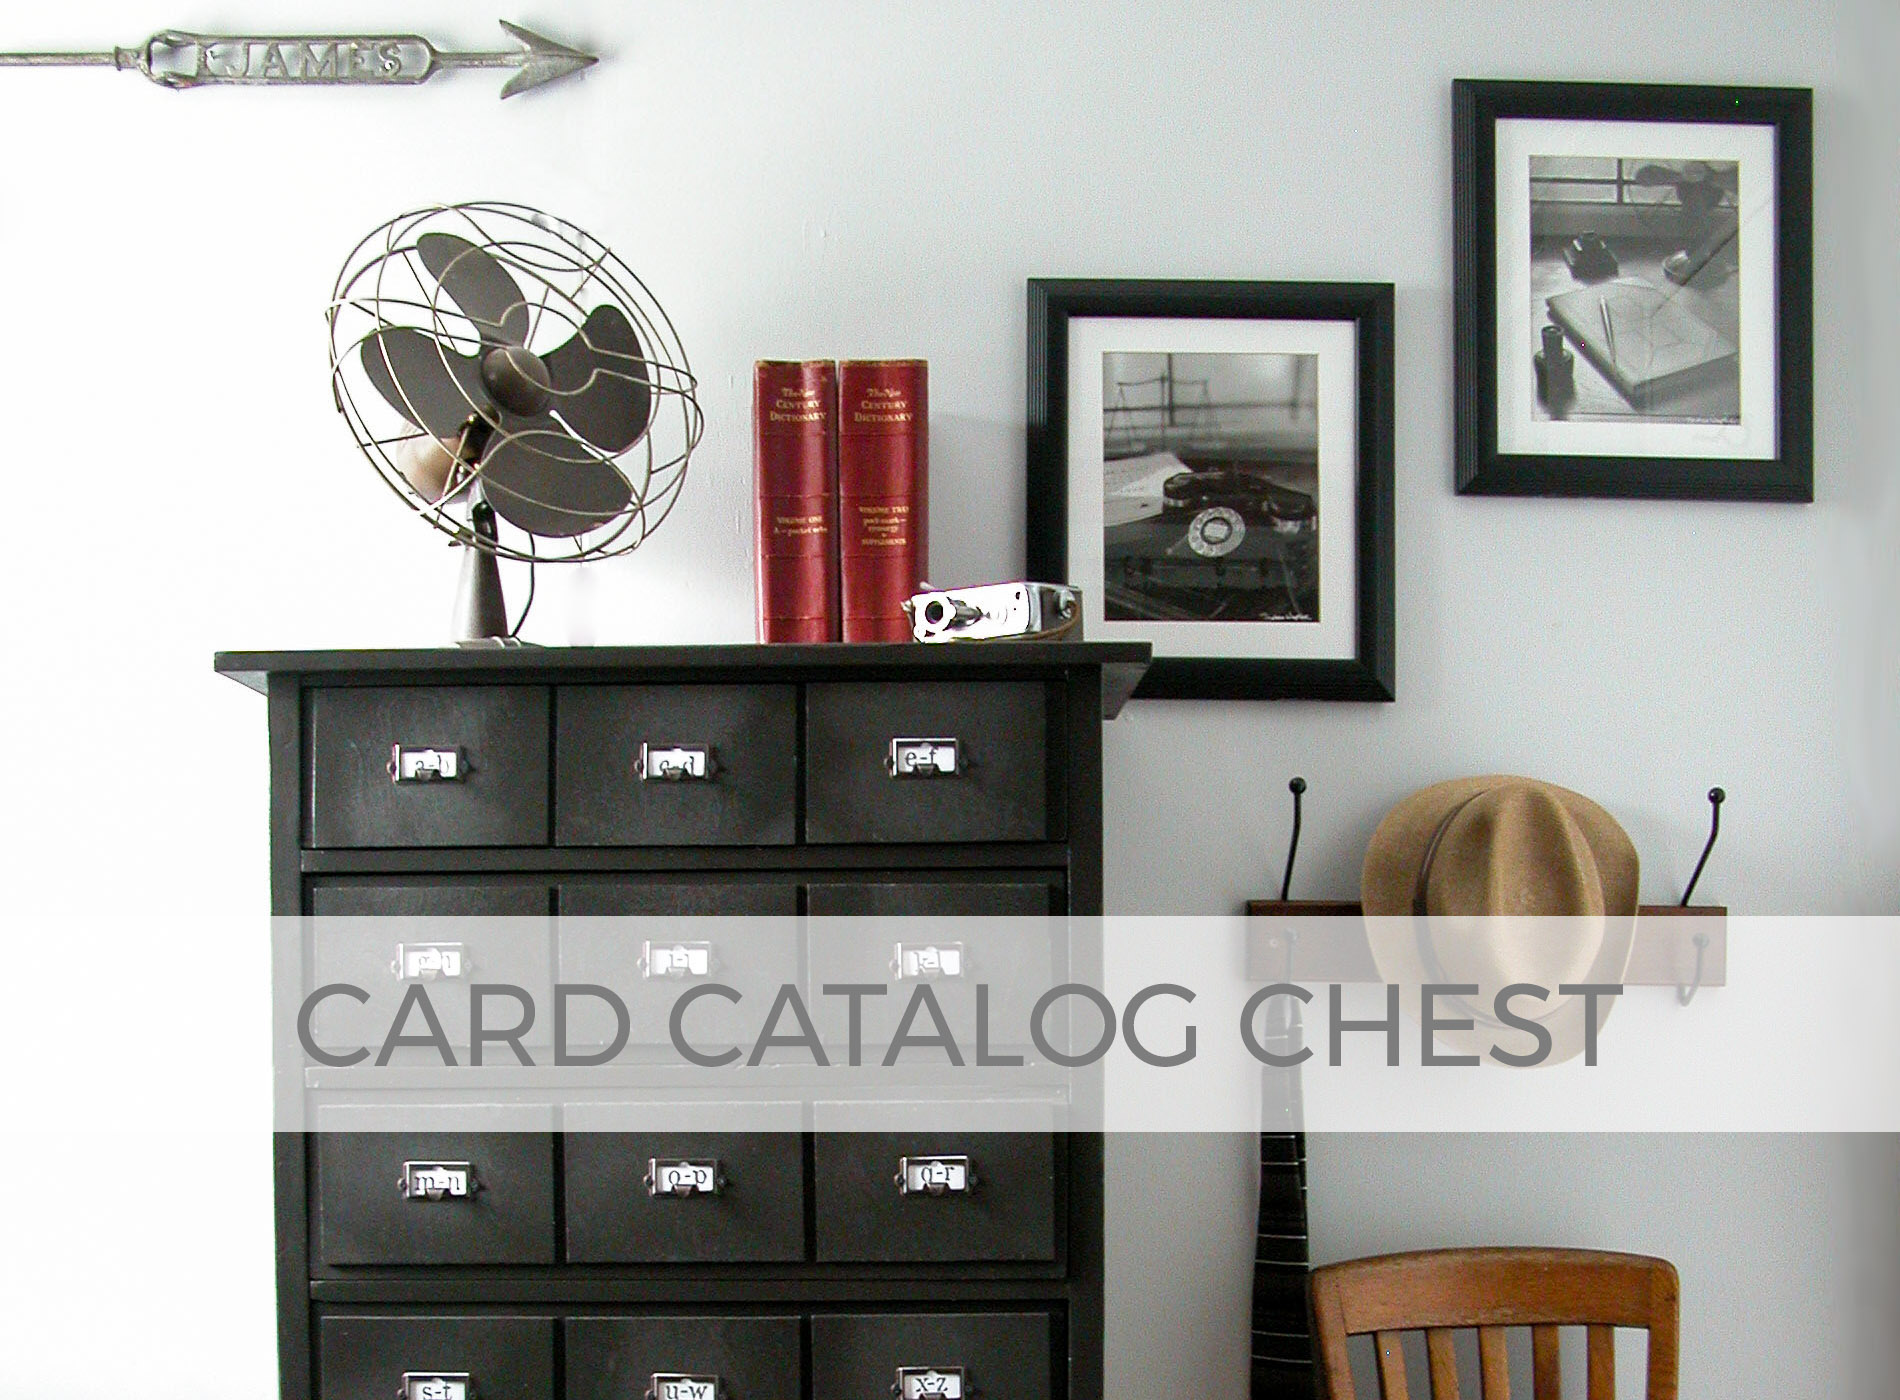 Upcycled Child's Chest of Drawers into Card Catalog Chest by Larissa of Prodigal Pieces | prodigalpieces.com #prodigalpieces